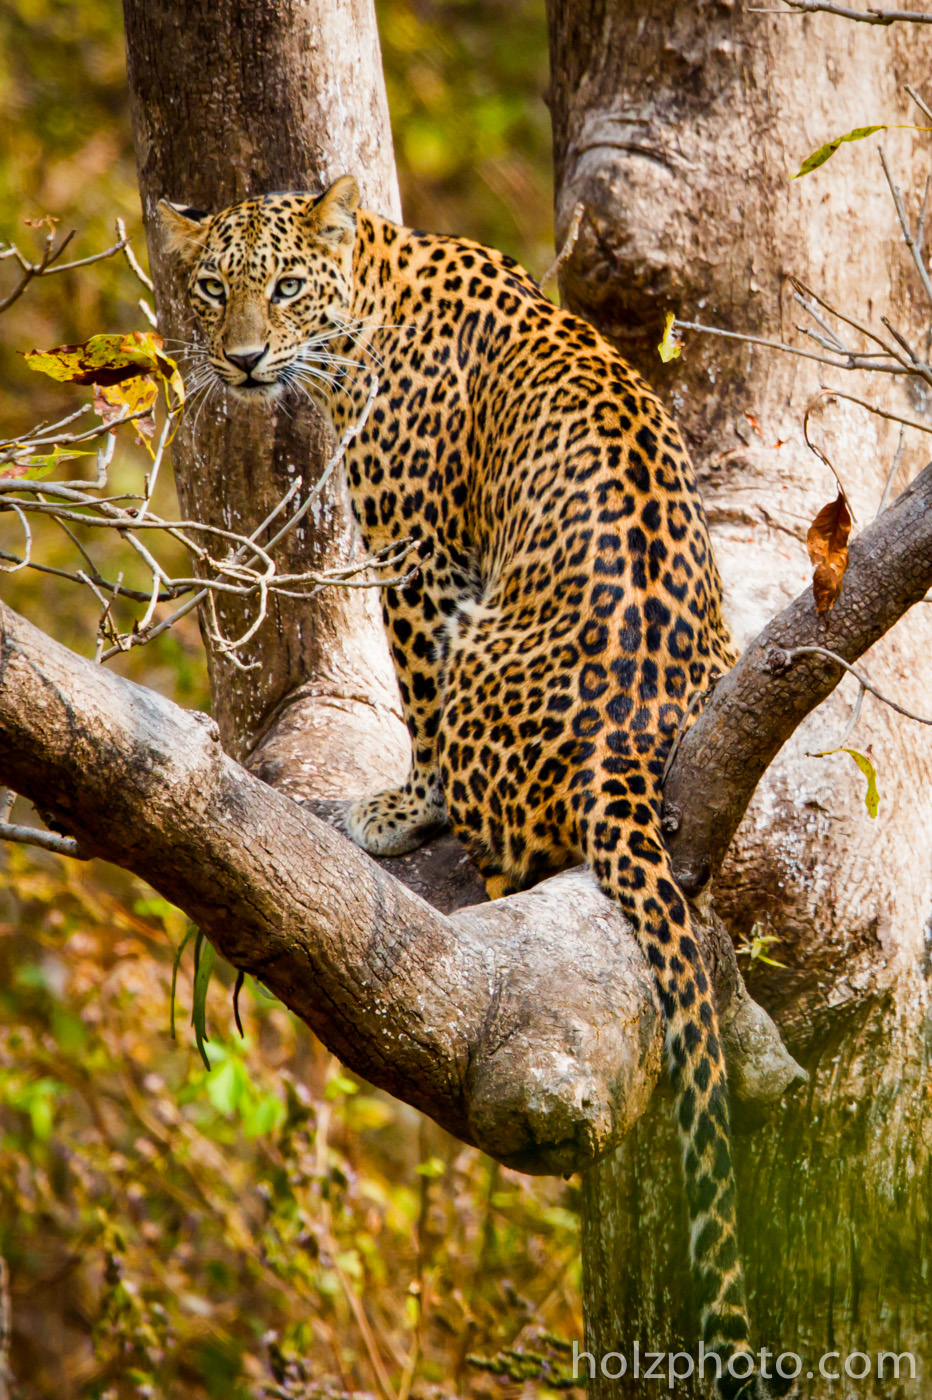 Indian Leopard in Khana National Park, India.  Taken with the Canon 5d III + 600mm f/4 IS II + 2x iii.